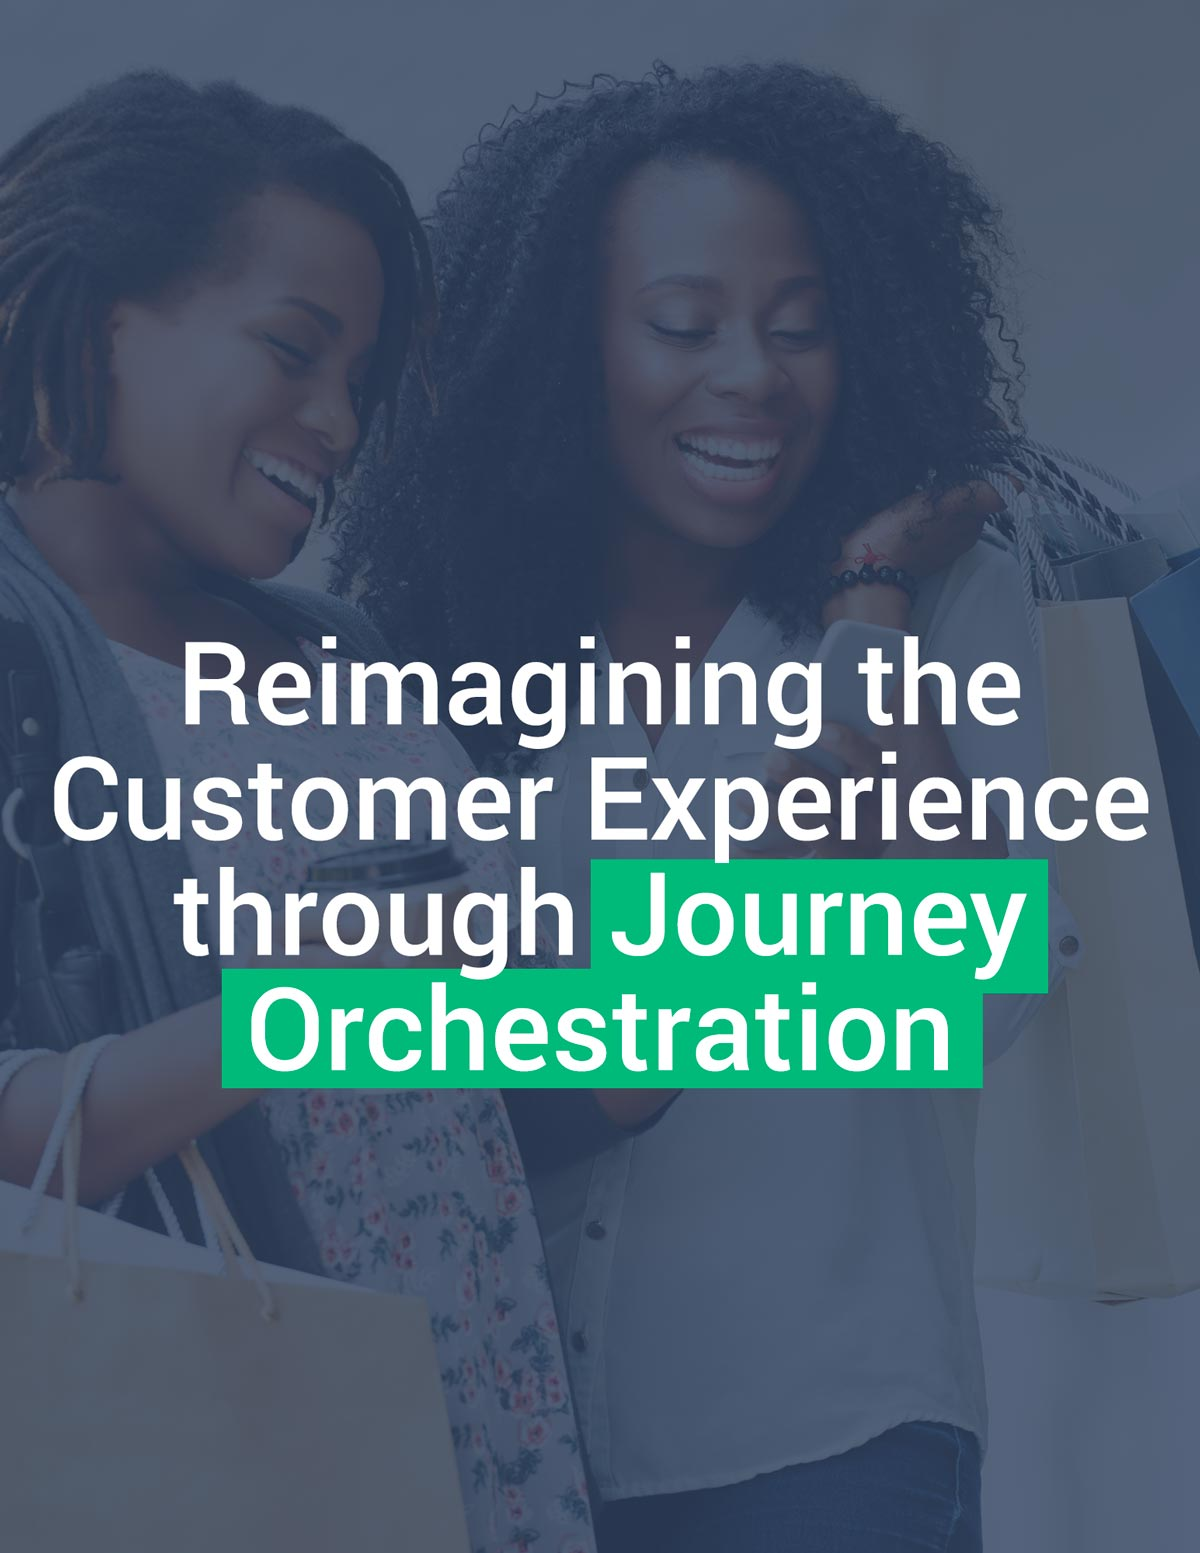 Reimagining the Customer Experience through Journey Orchestration